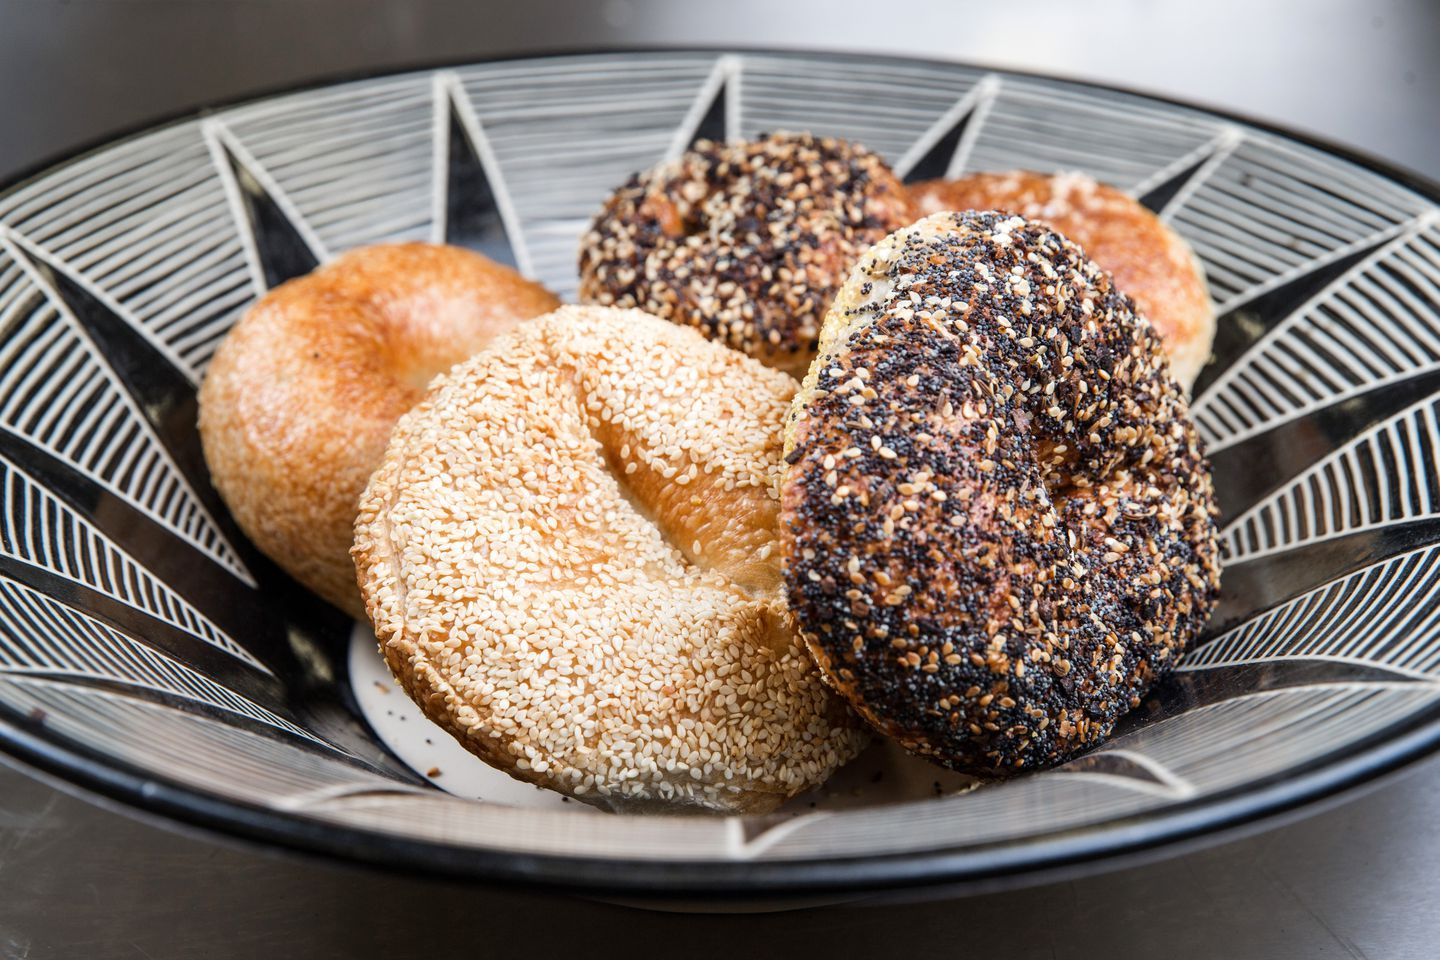 Sesame, plain, everything, and salt bagels at Exodus.